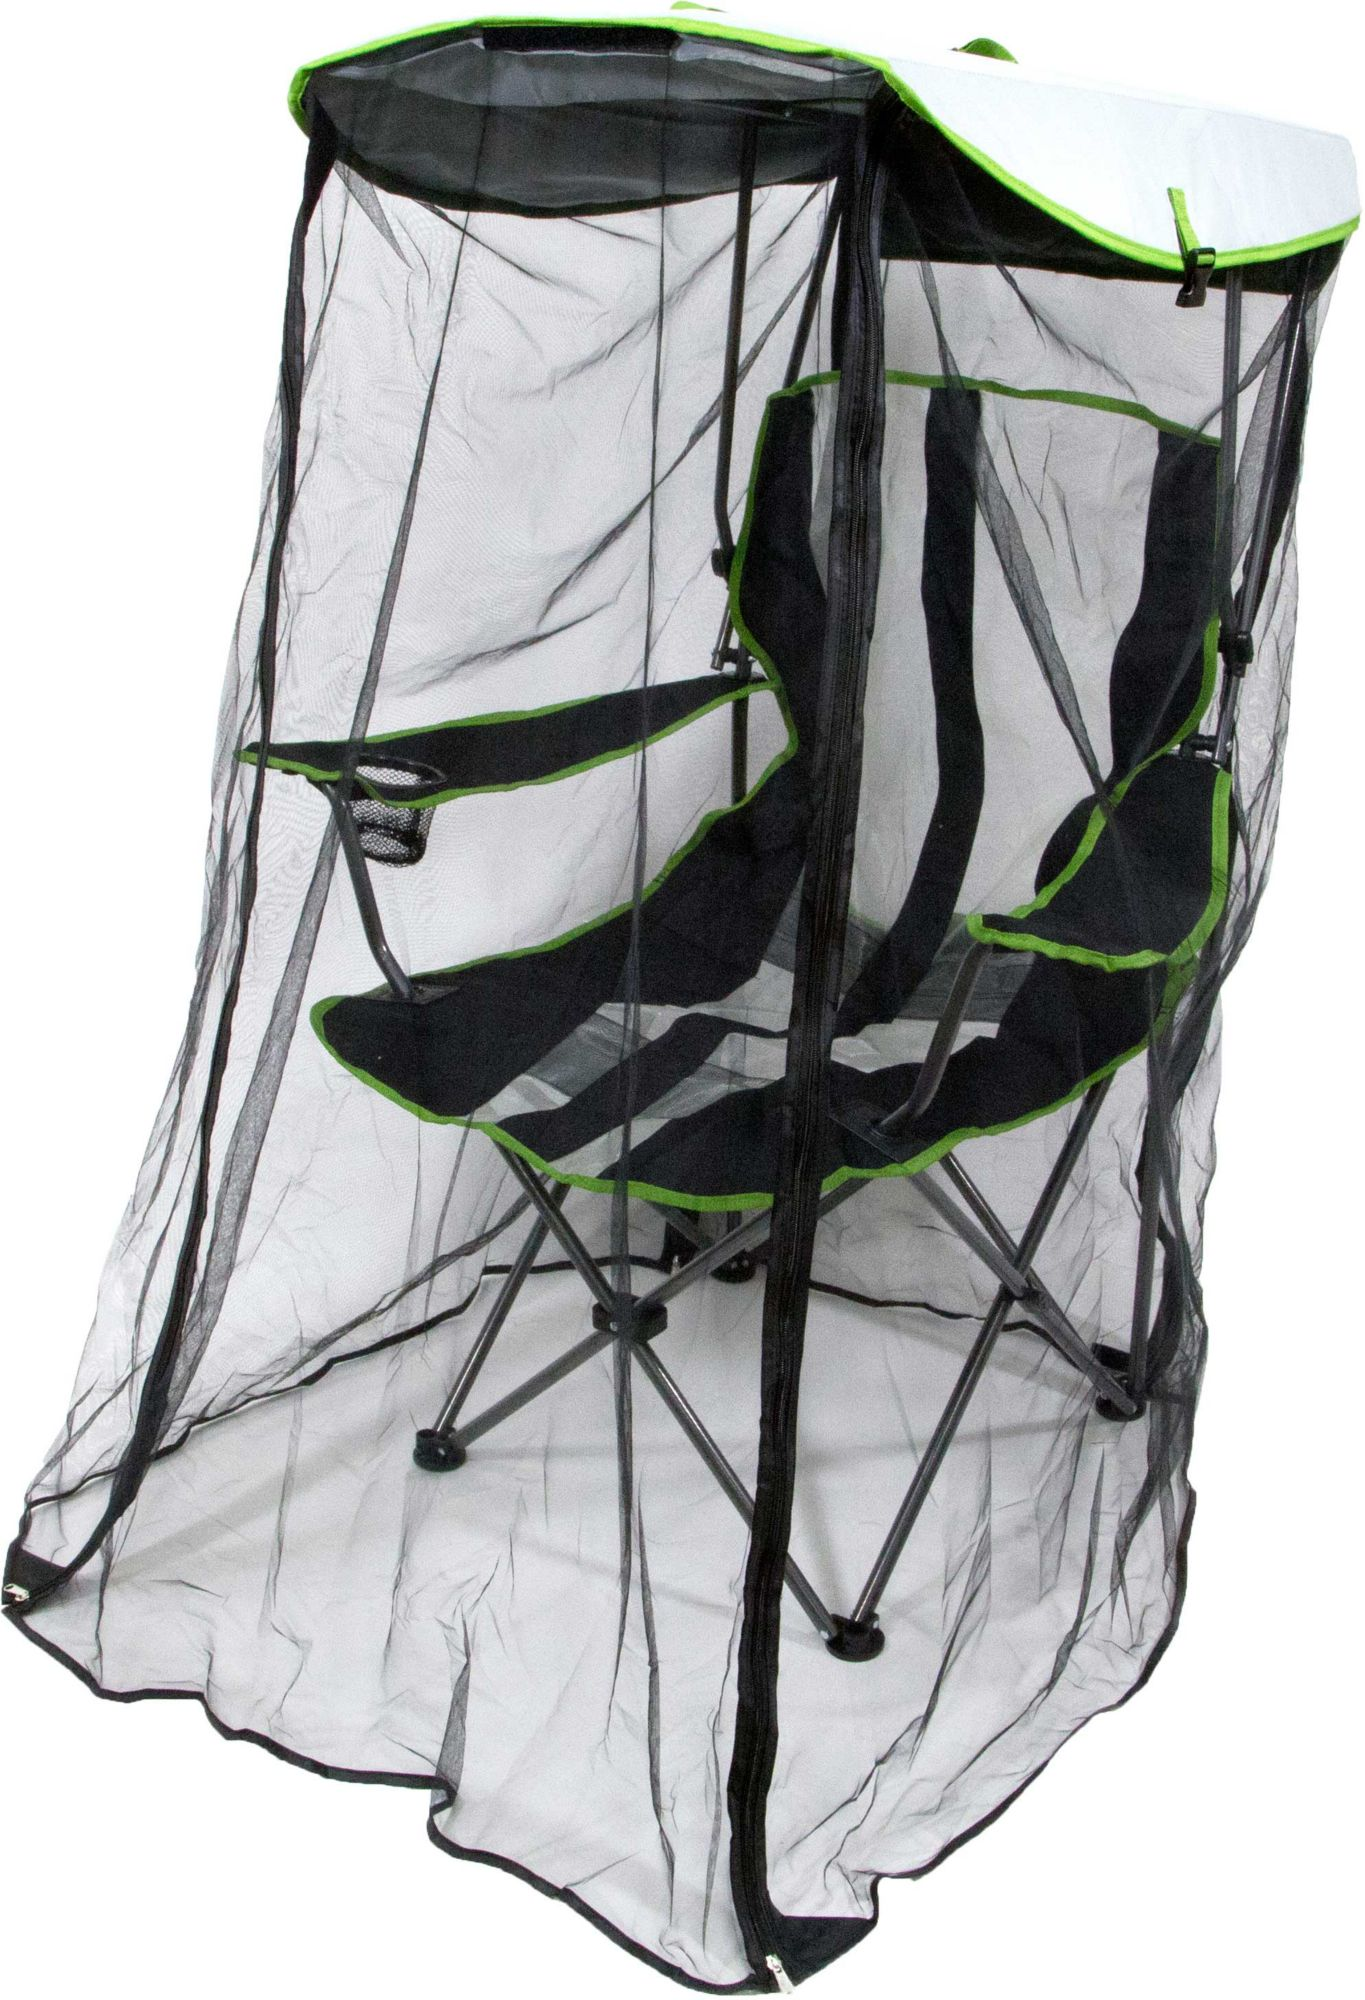 sc 1 st  DICKu0027S Sporting Goods & Kelsyus Original Canopy Chair with Bug Net | DICKu0027S Sporting Goods